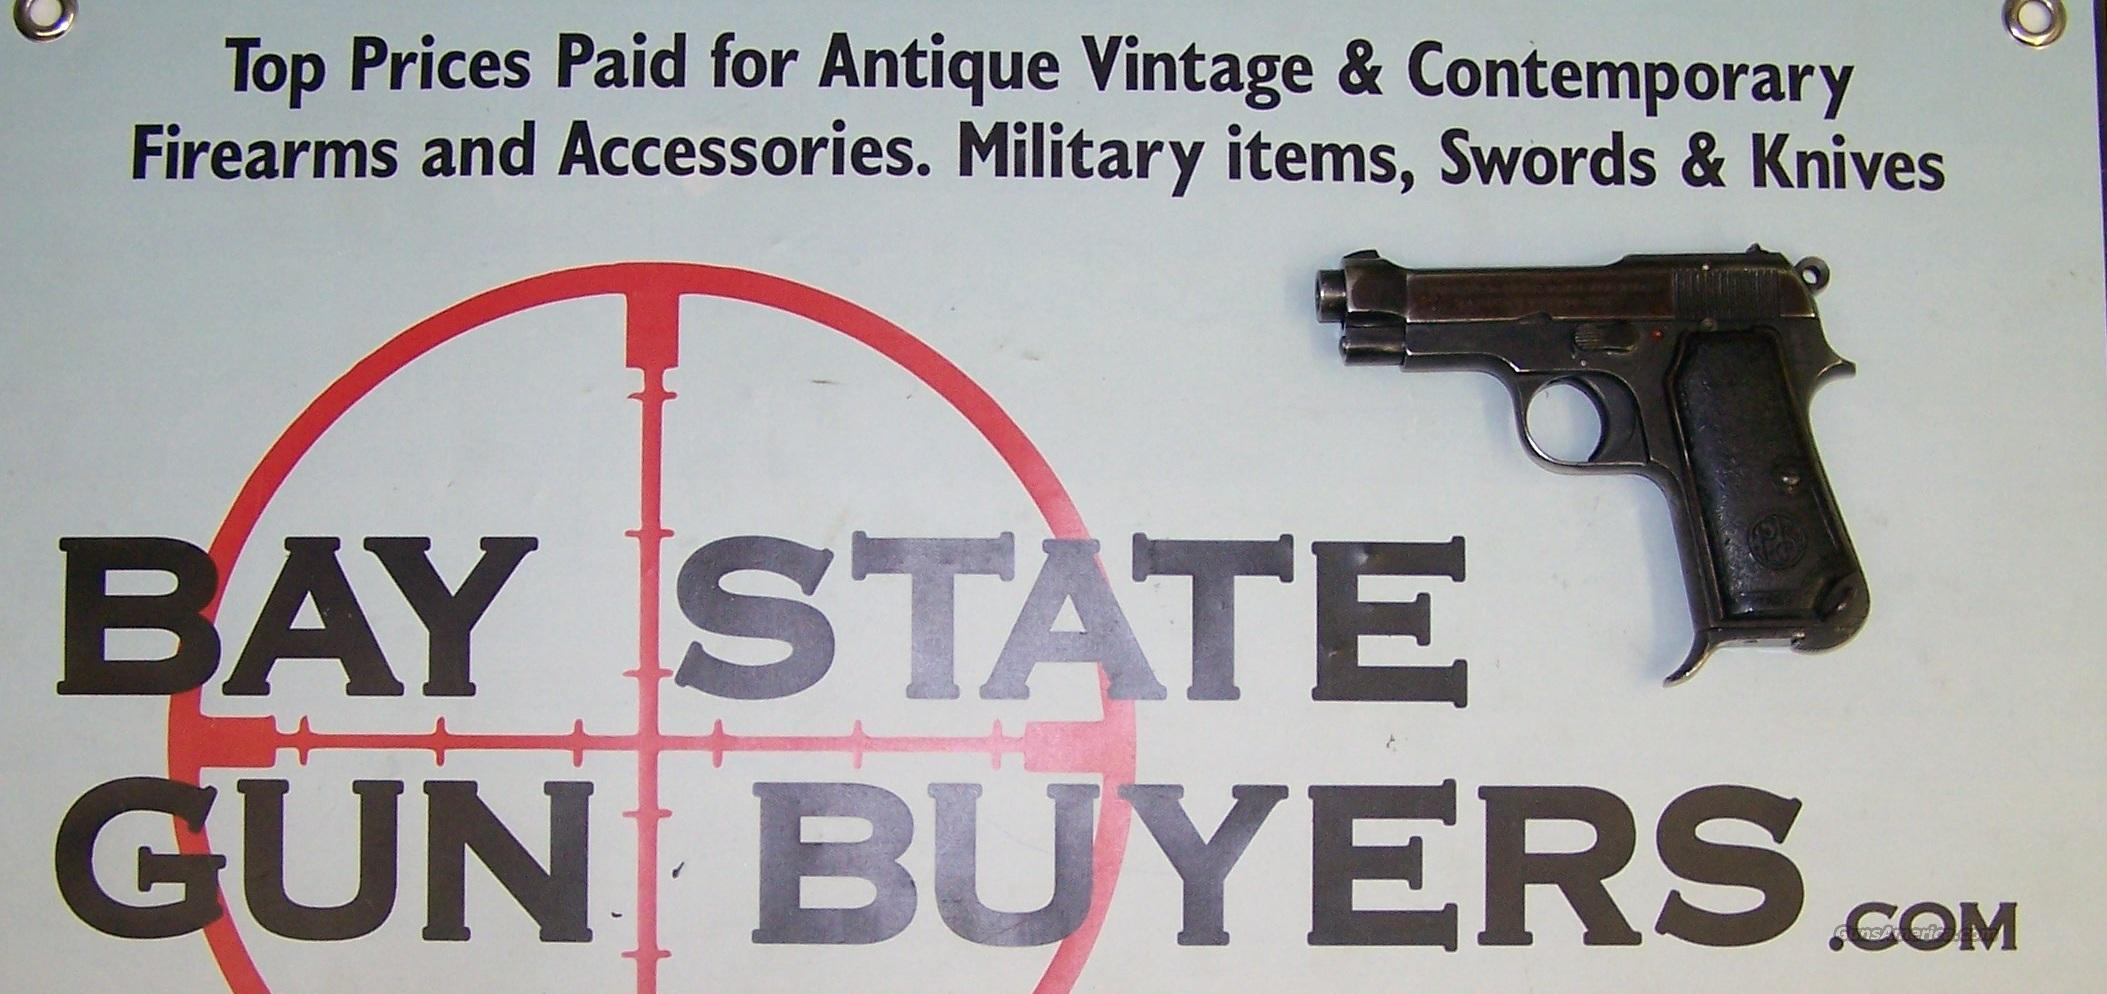 Beretta Model 1934 pistol 9 mm .380 cal with holster  Guns > Pistols > Beretta Pistols > Rare & Collectible